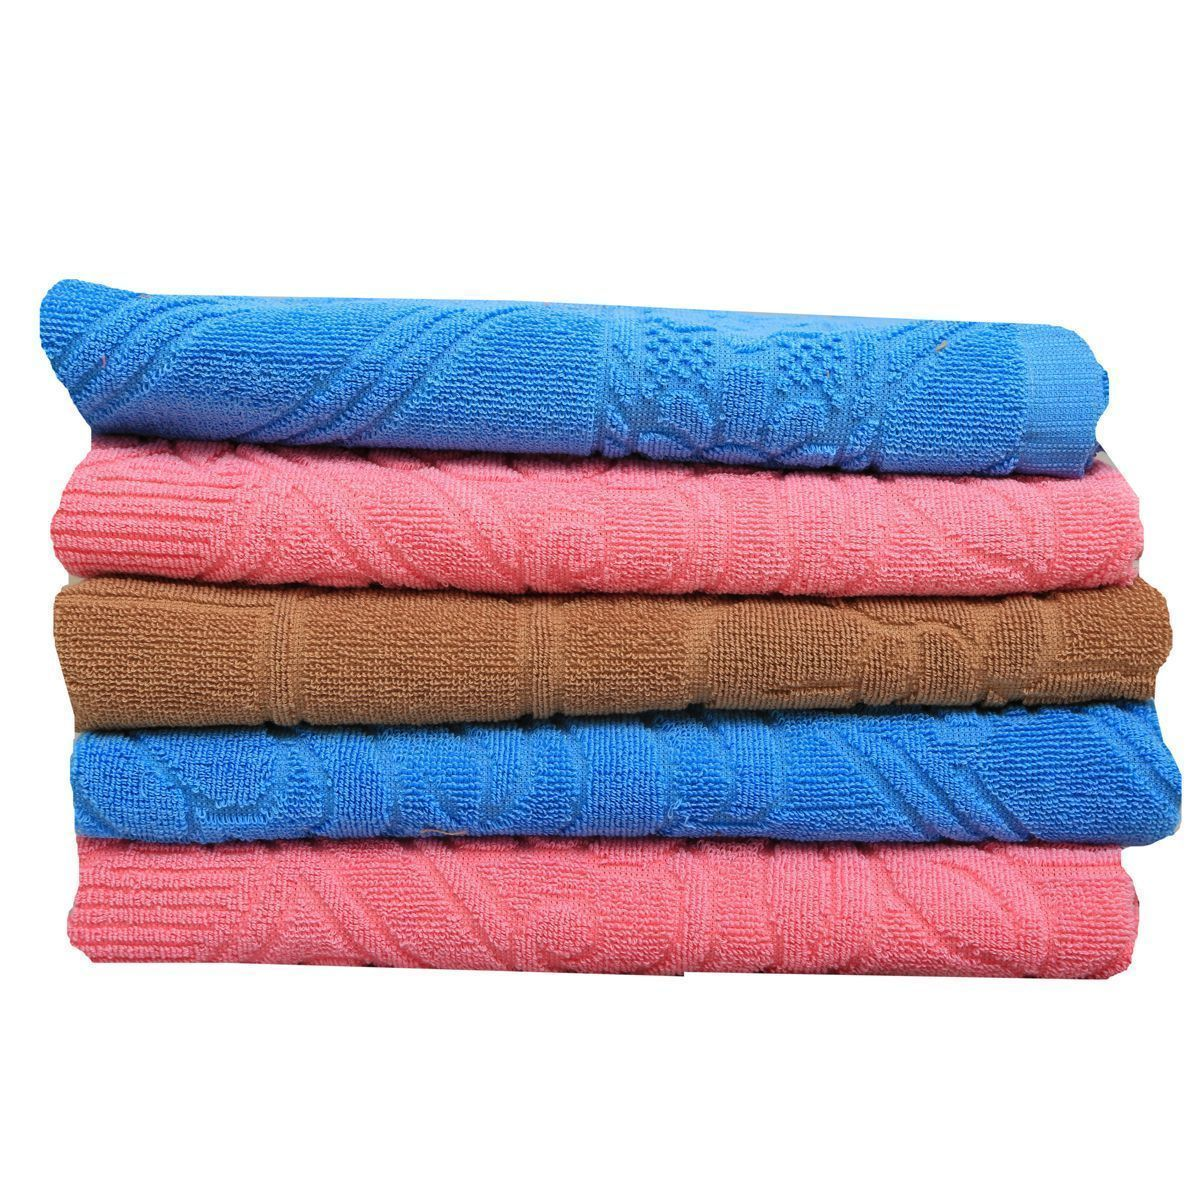 Kuber Industries 100% Pure Cotton Men's Bath Towel Set Of 5 Pcs GSM-400 (27*54 Inches )Pink & Sky Blue & Brown-KU41